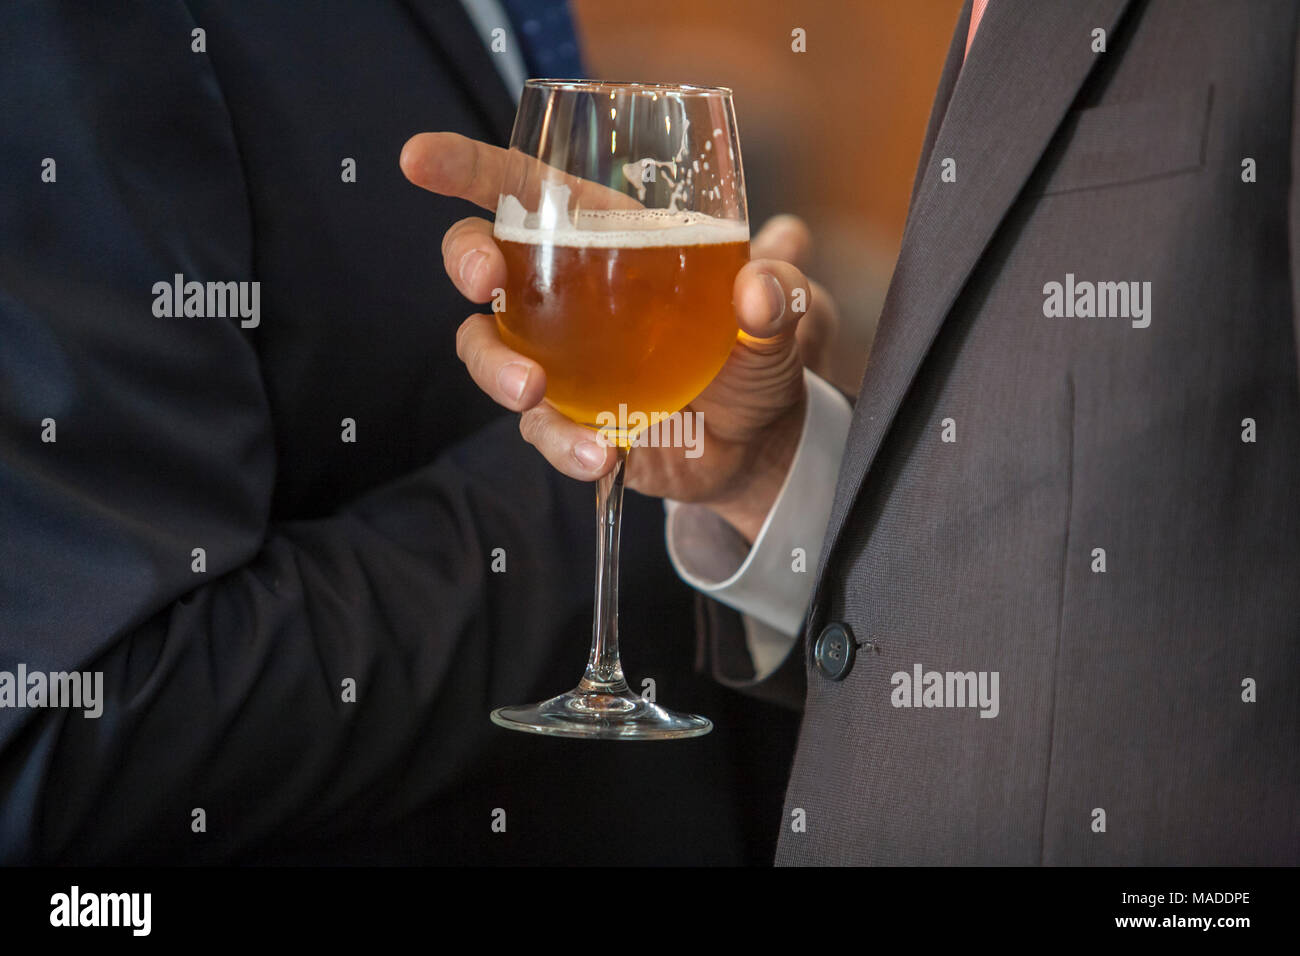 People drinking beer at Welcome cocktail party with formal wear. Two men with glass chalice. Selective focus - Stock Image